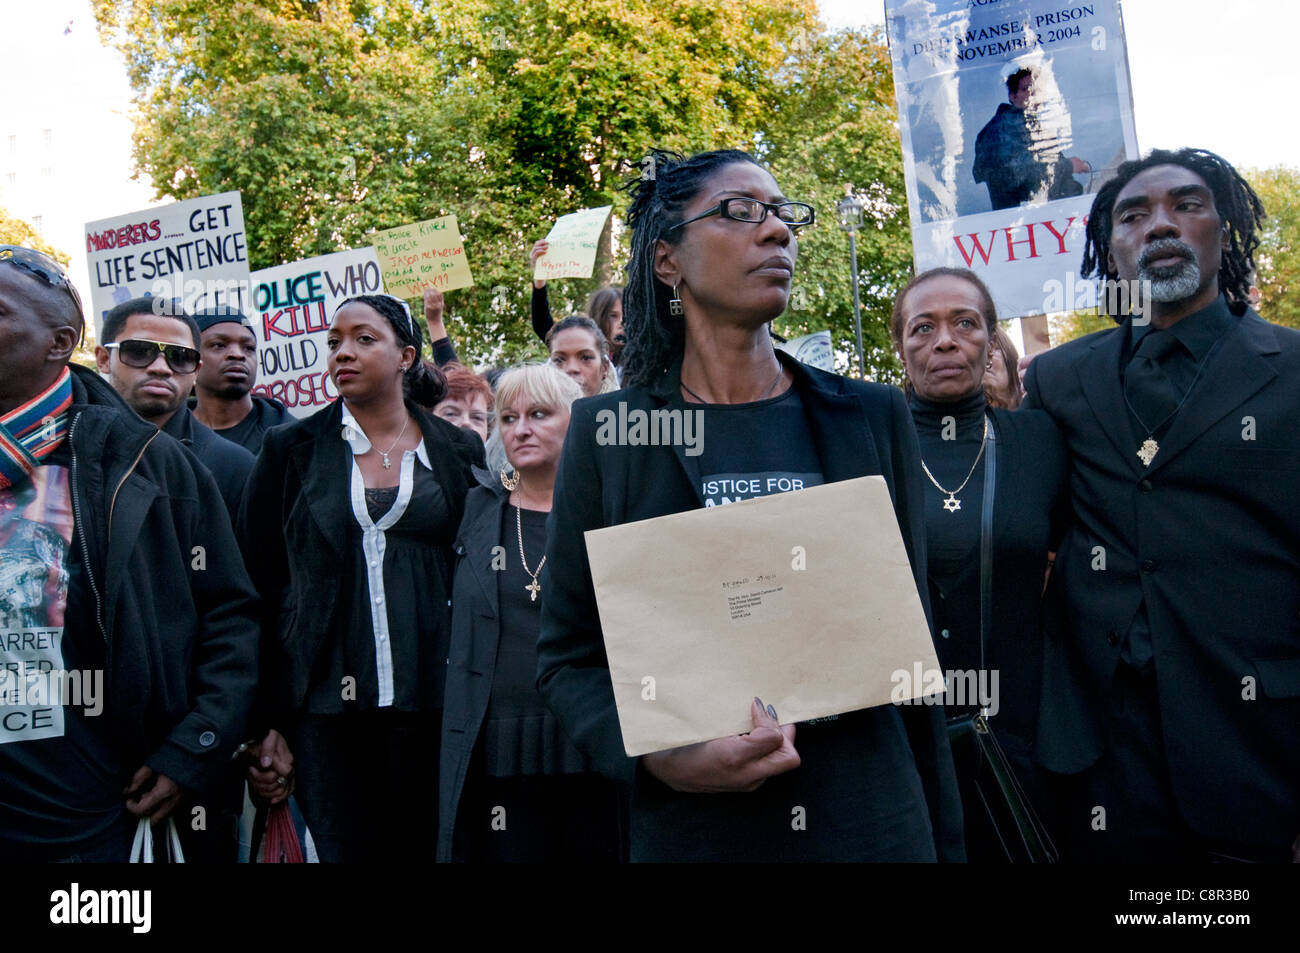 Families and friends of relatives who have died  in police custody march through London appeal for justice. - Stock Image